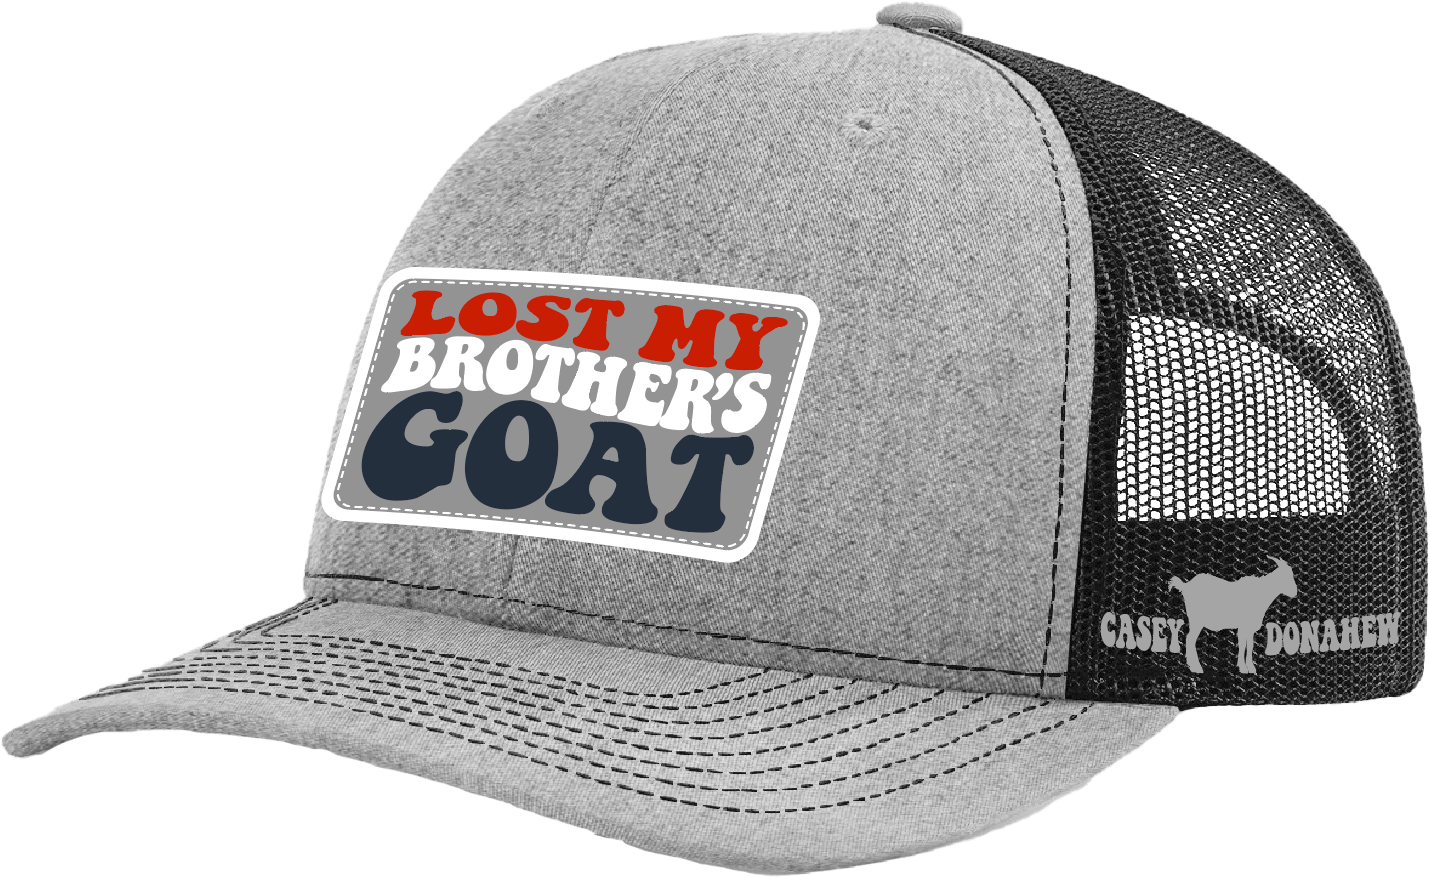 Lost My Brother's Goat Hat